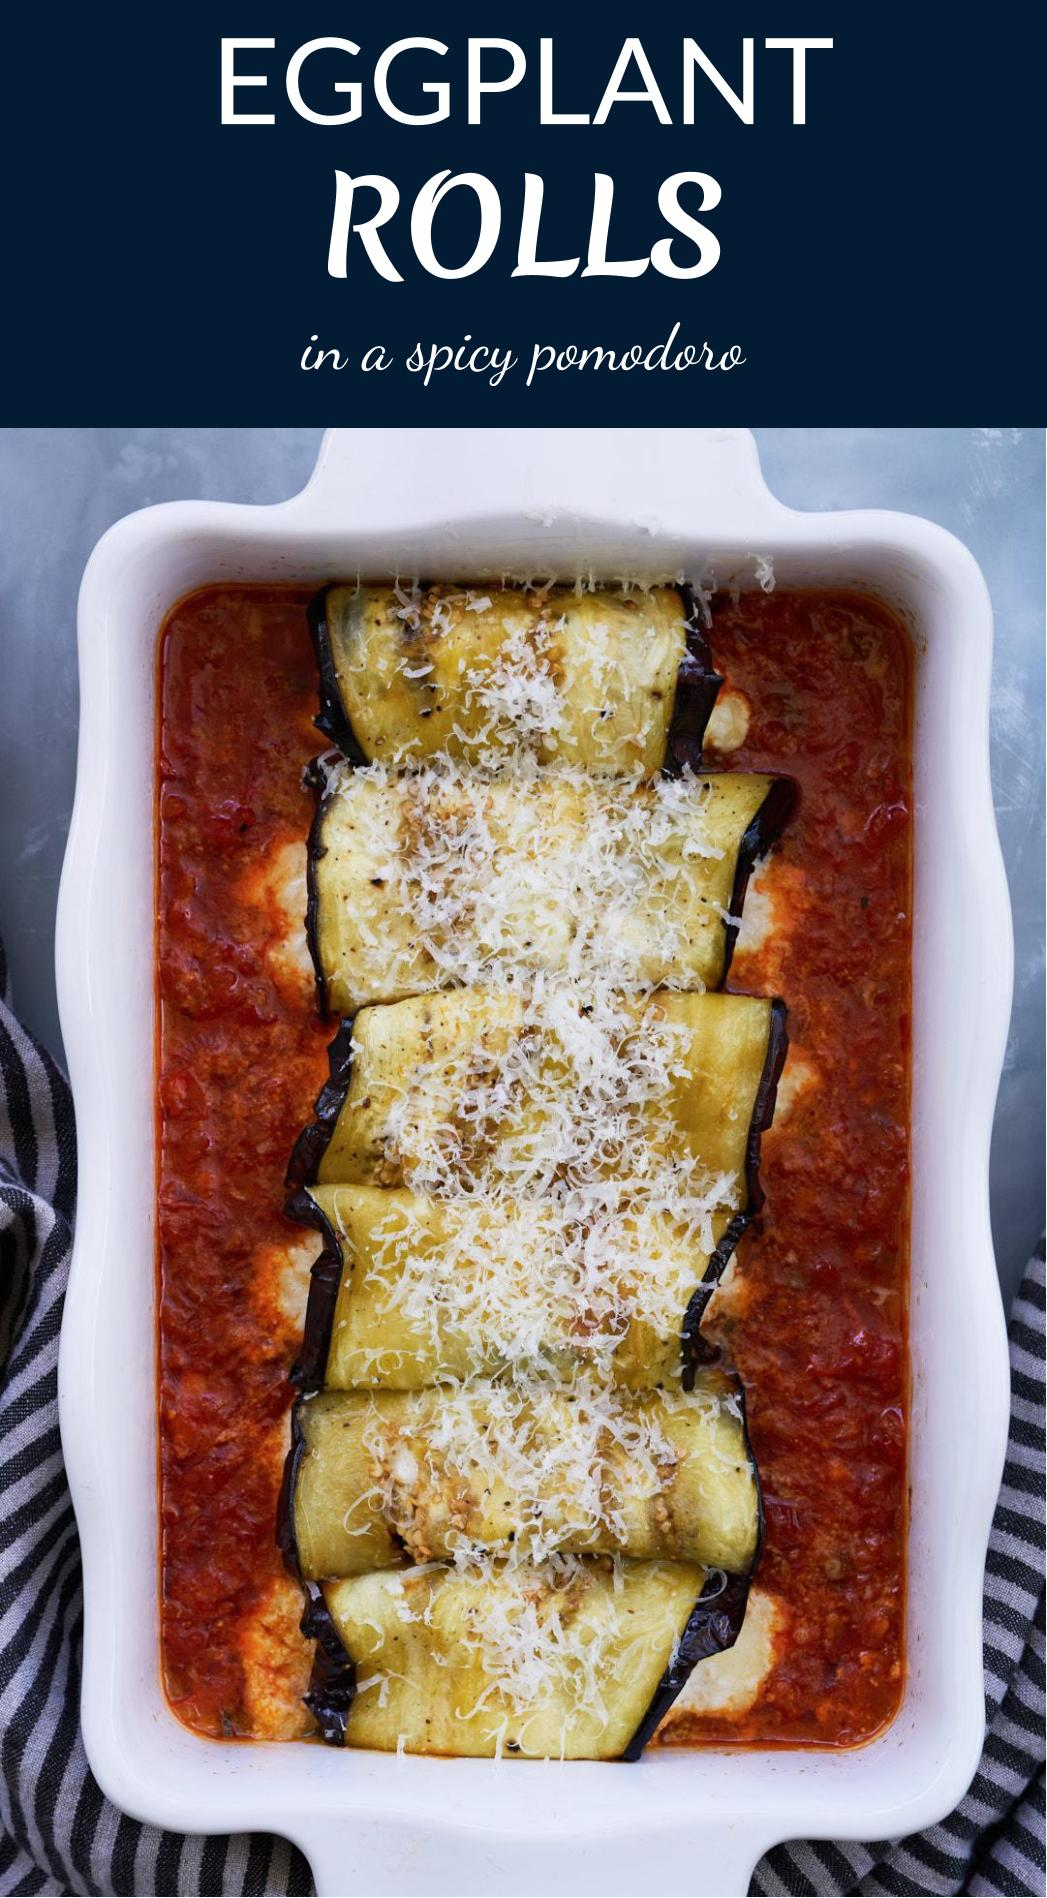 Eggplant Rolls in a Spicy Pomodoro Sauce | Proportional Plate